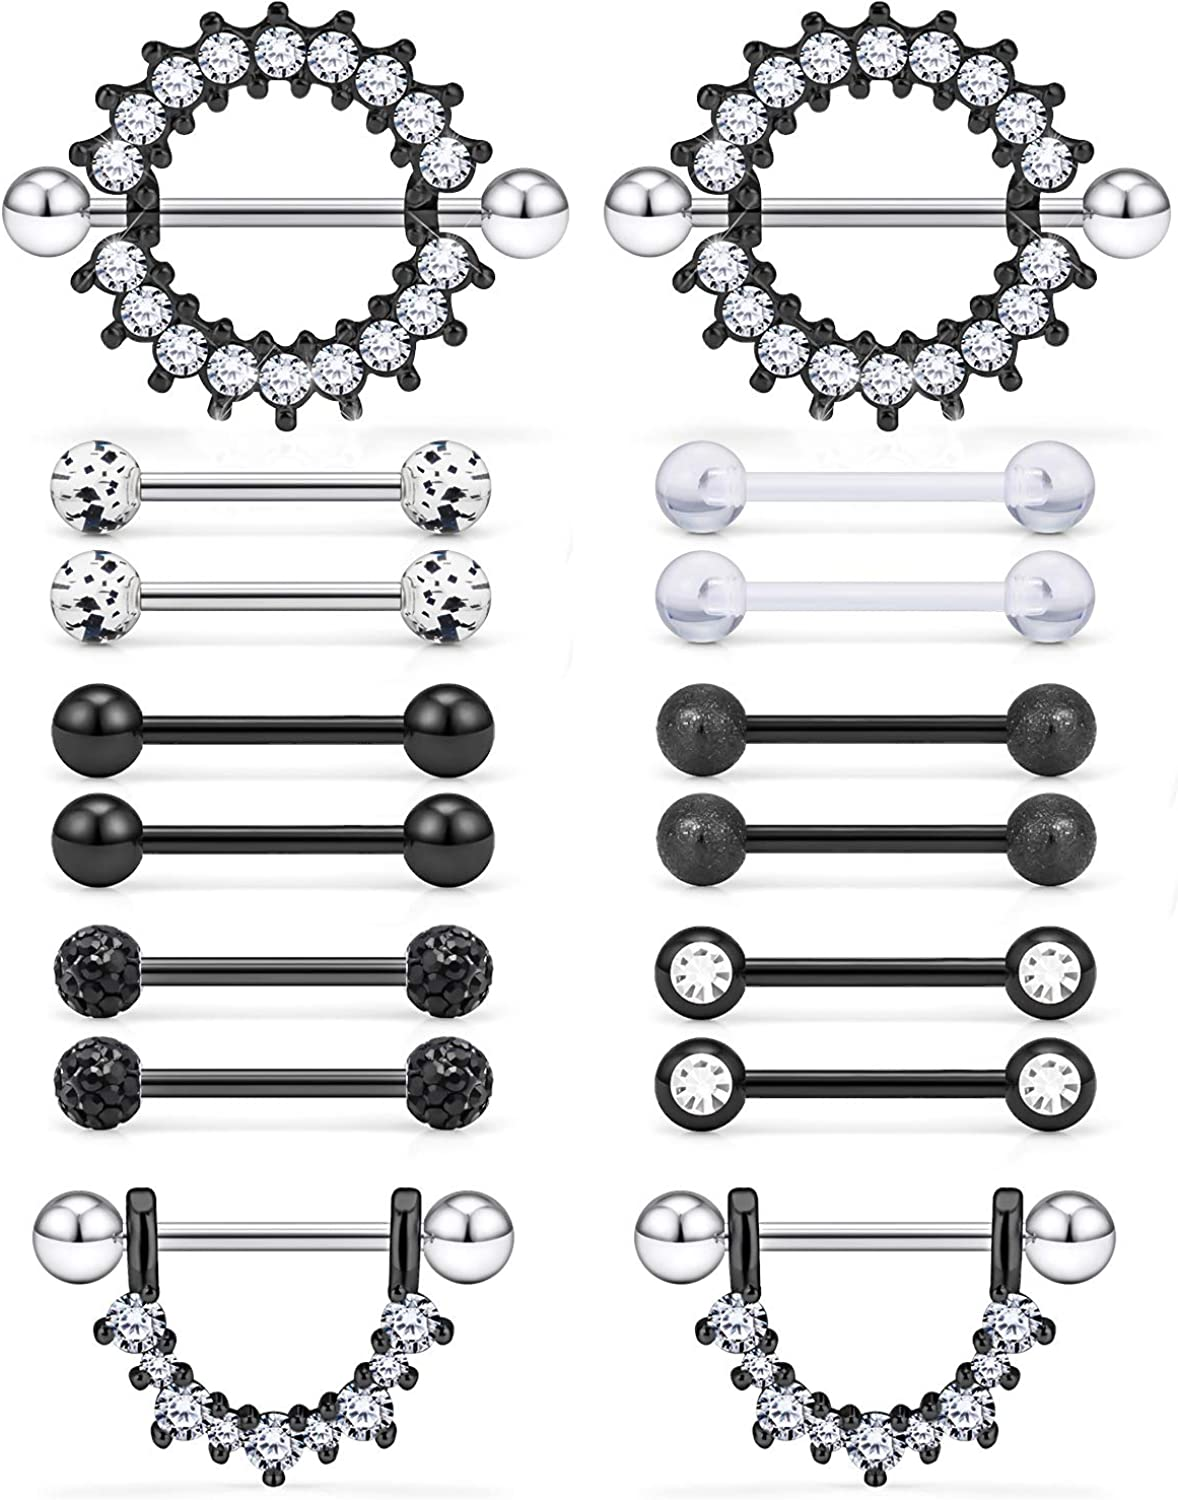 Prjndjw 14G, 9/16in(14mm) L, 8 Pairs 5mm Ball Surgical Steel Nipplerings Nipple Tongue Rings CZ Acrylic Barbell Body Piercing Jewelry